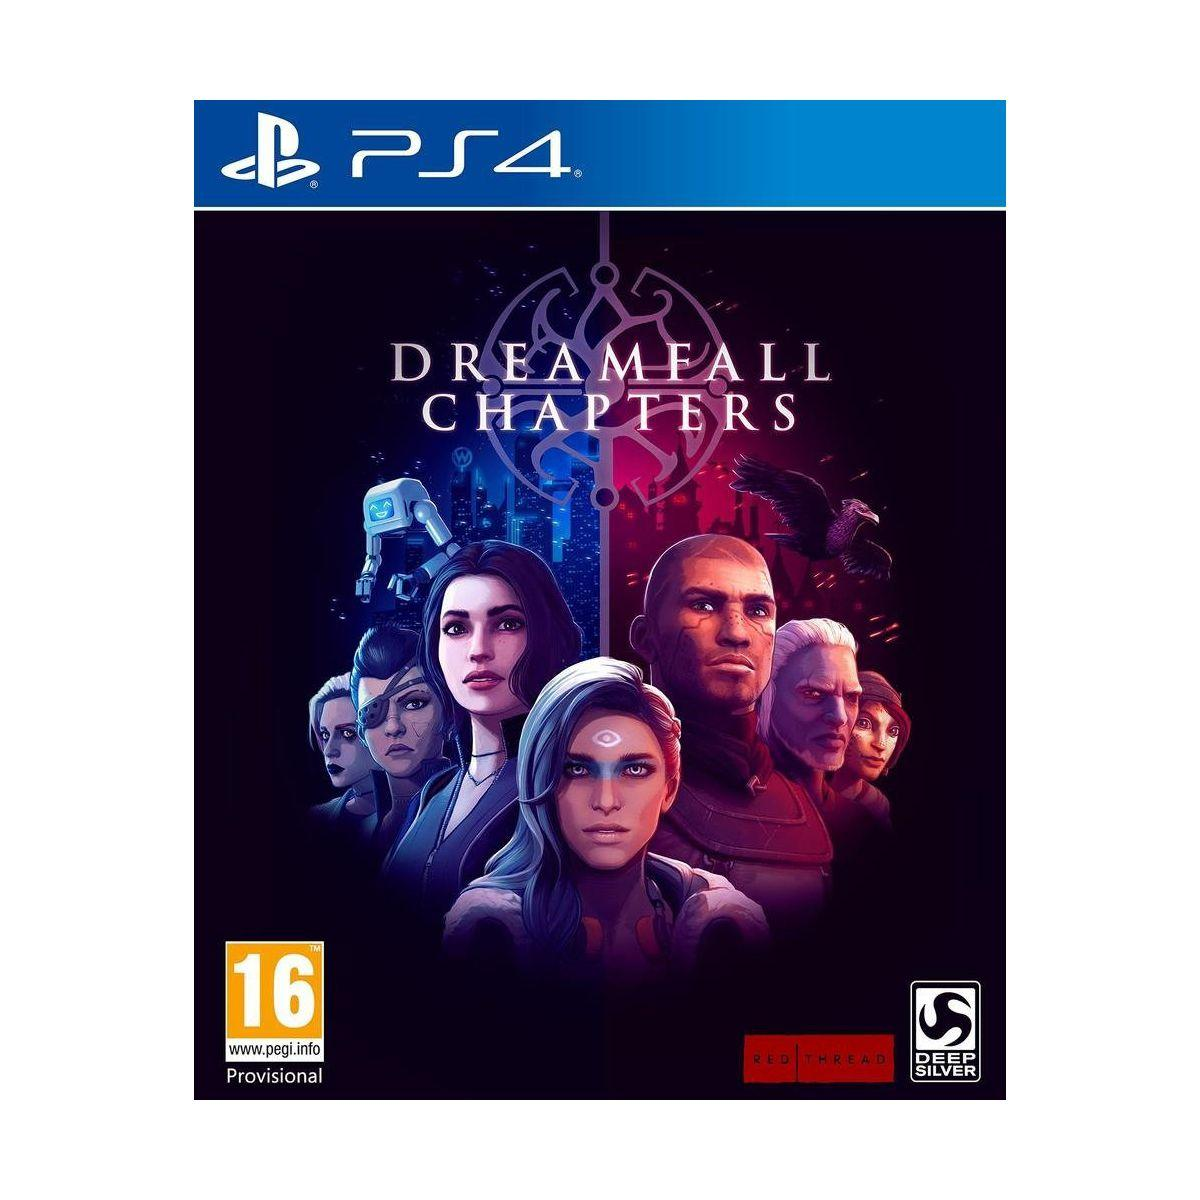 Jeu ps4 koch media dreamfall chapters - 2% de remise immédiate avec le code : cool2 (photo)